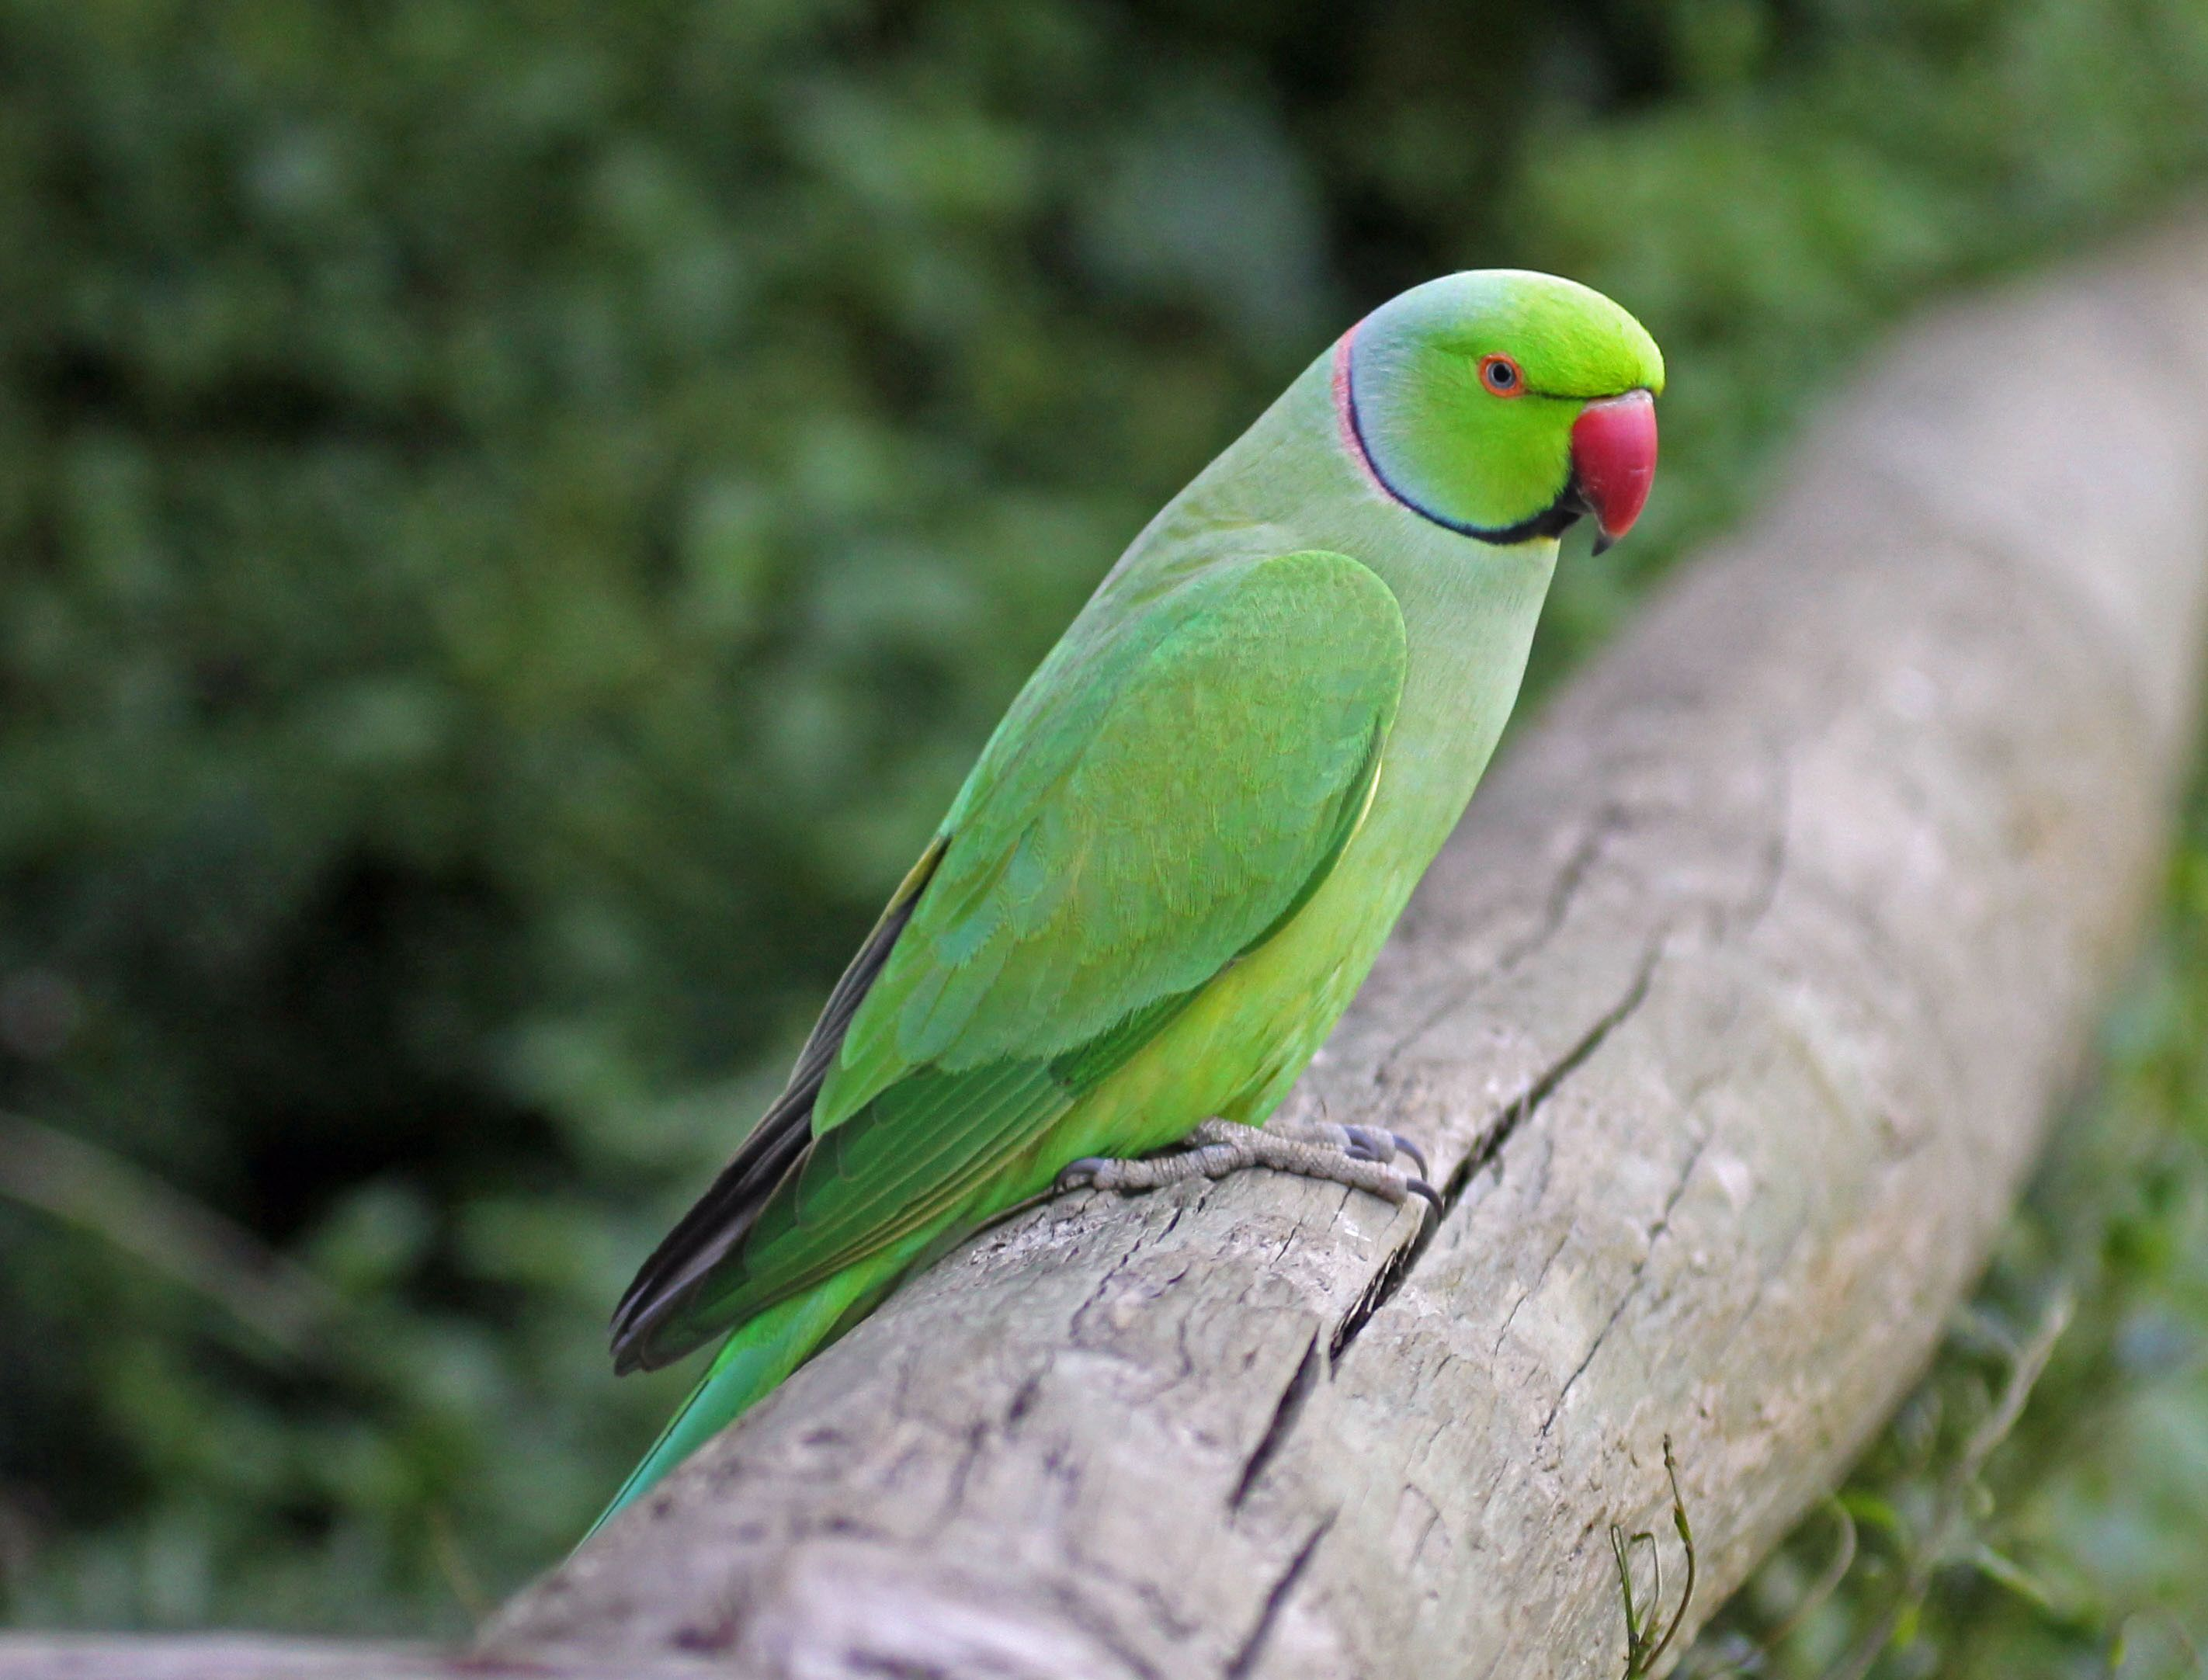 All parakeets are parrots, though not all parrots are parakeets ...